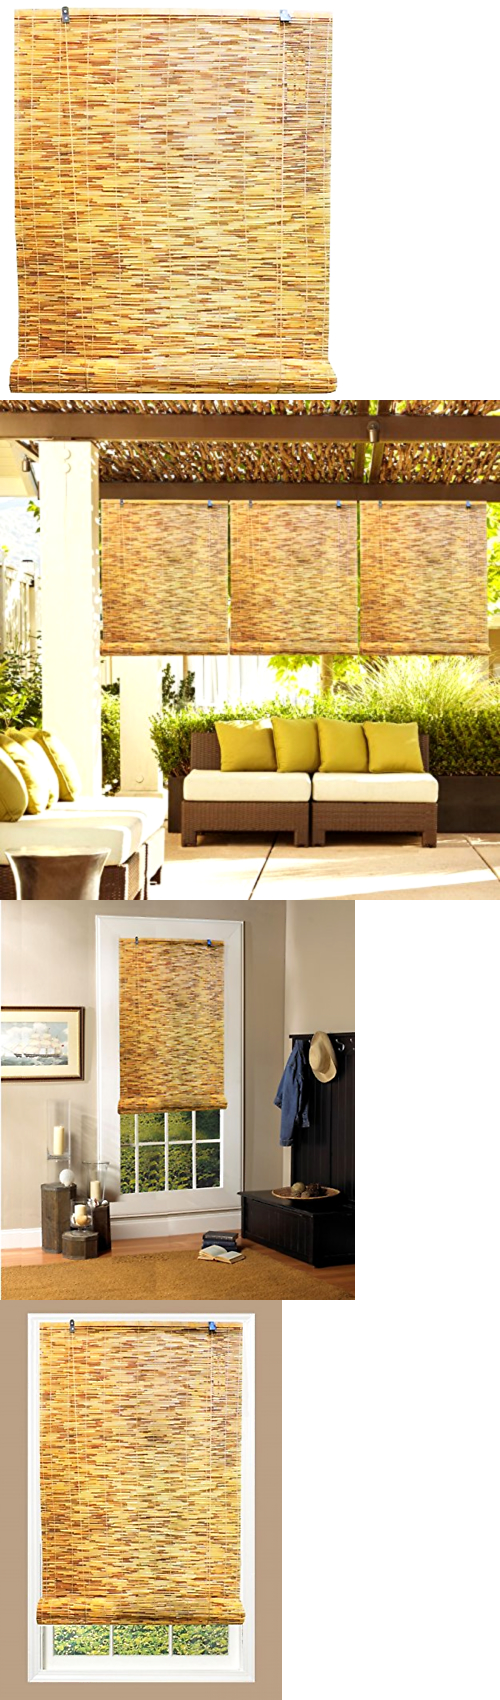 Blinds and Shades 20585: Outdoor Patio Garden Reed Wood Roll Up ...